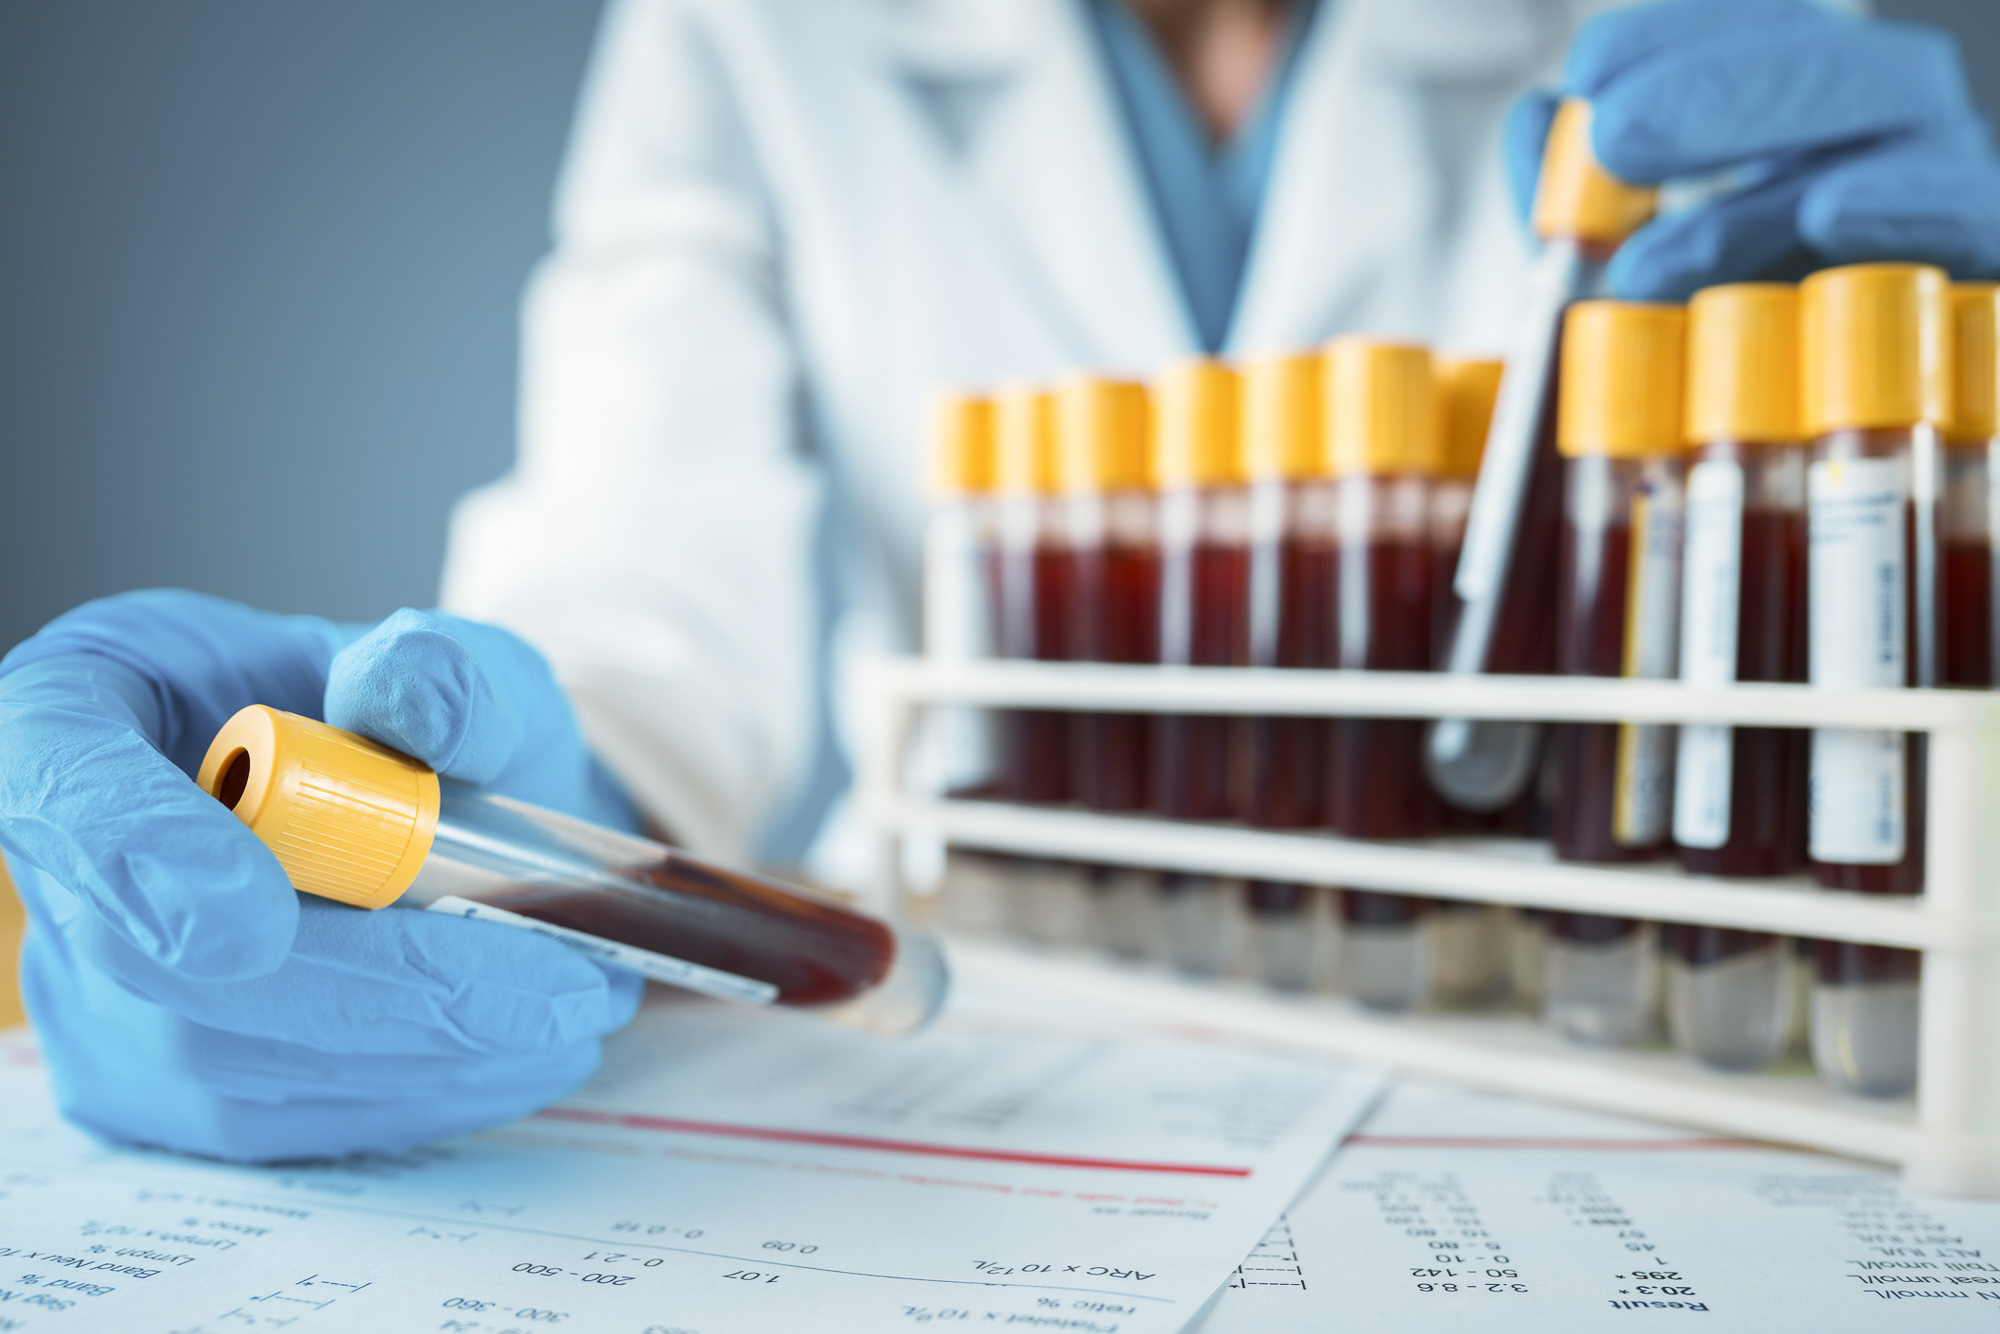 A blood test could be released soon that would tell us who has immunity to COVID-19. Image via iStock